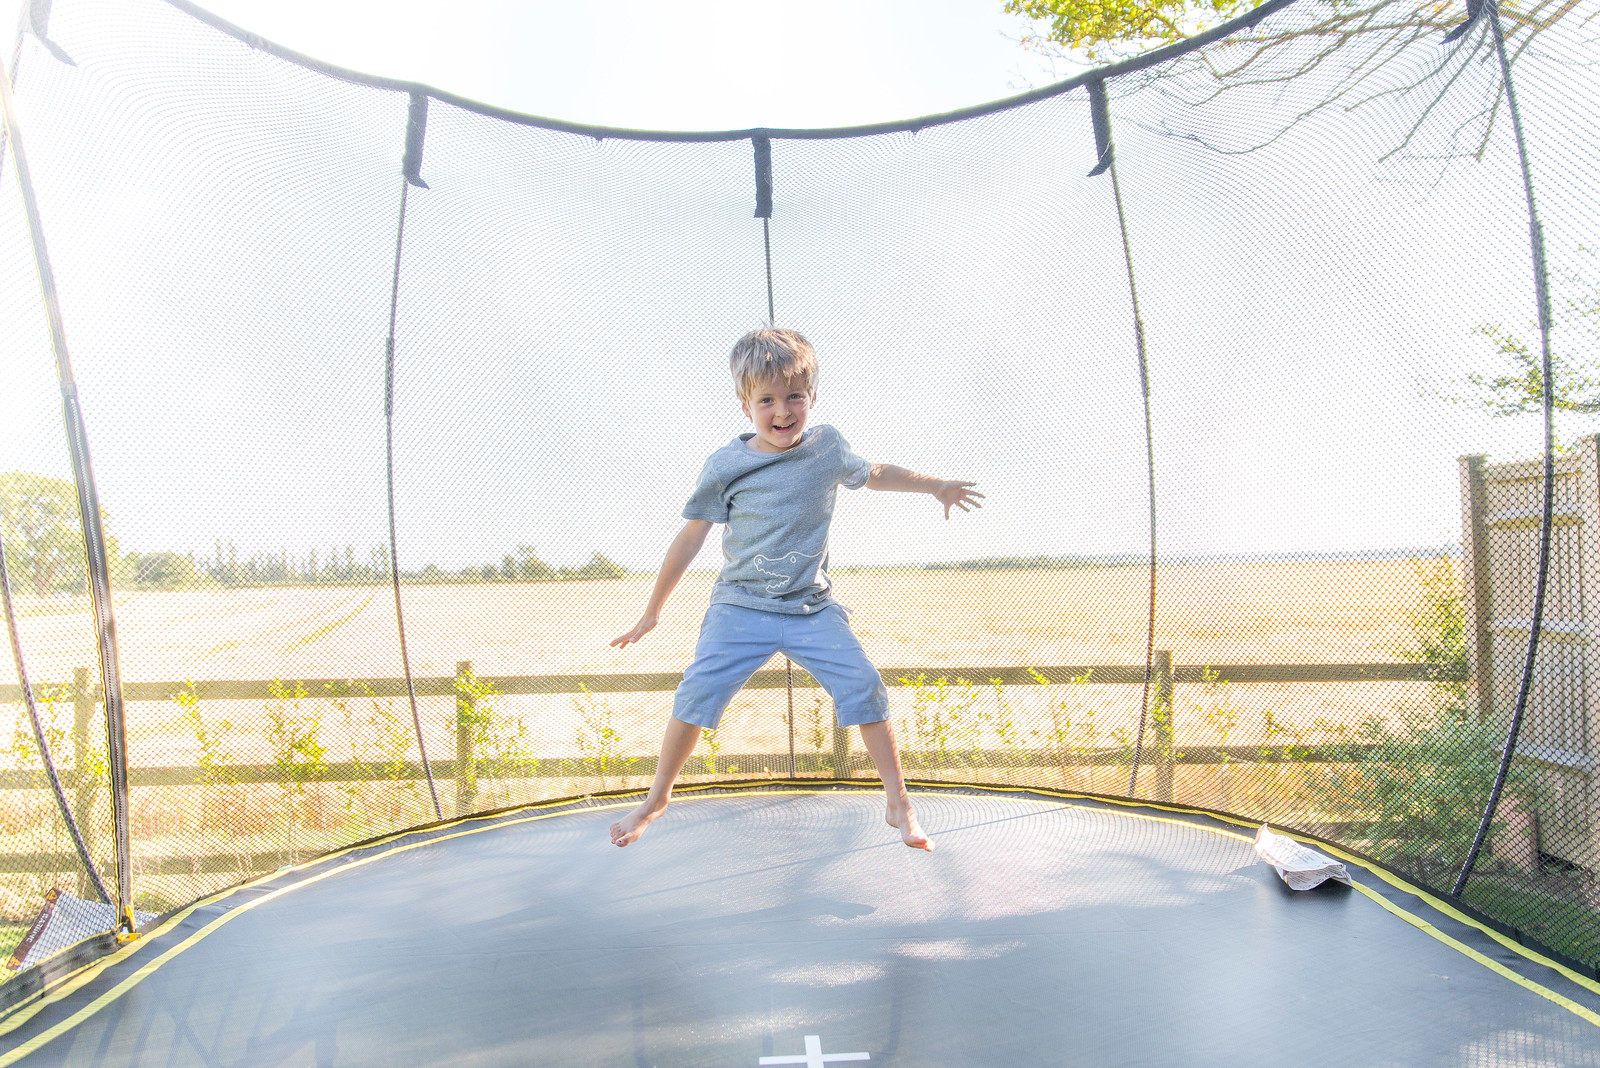 How to take great photos of your kids on the trampoline this summer - This photo was taken using a clever trick which makes the safety net vanish in photos!